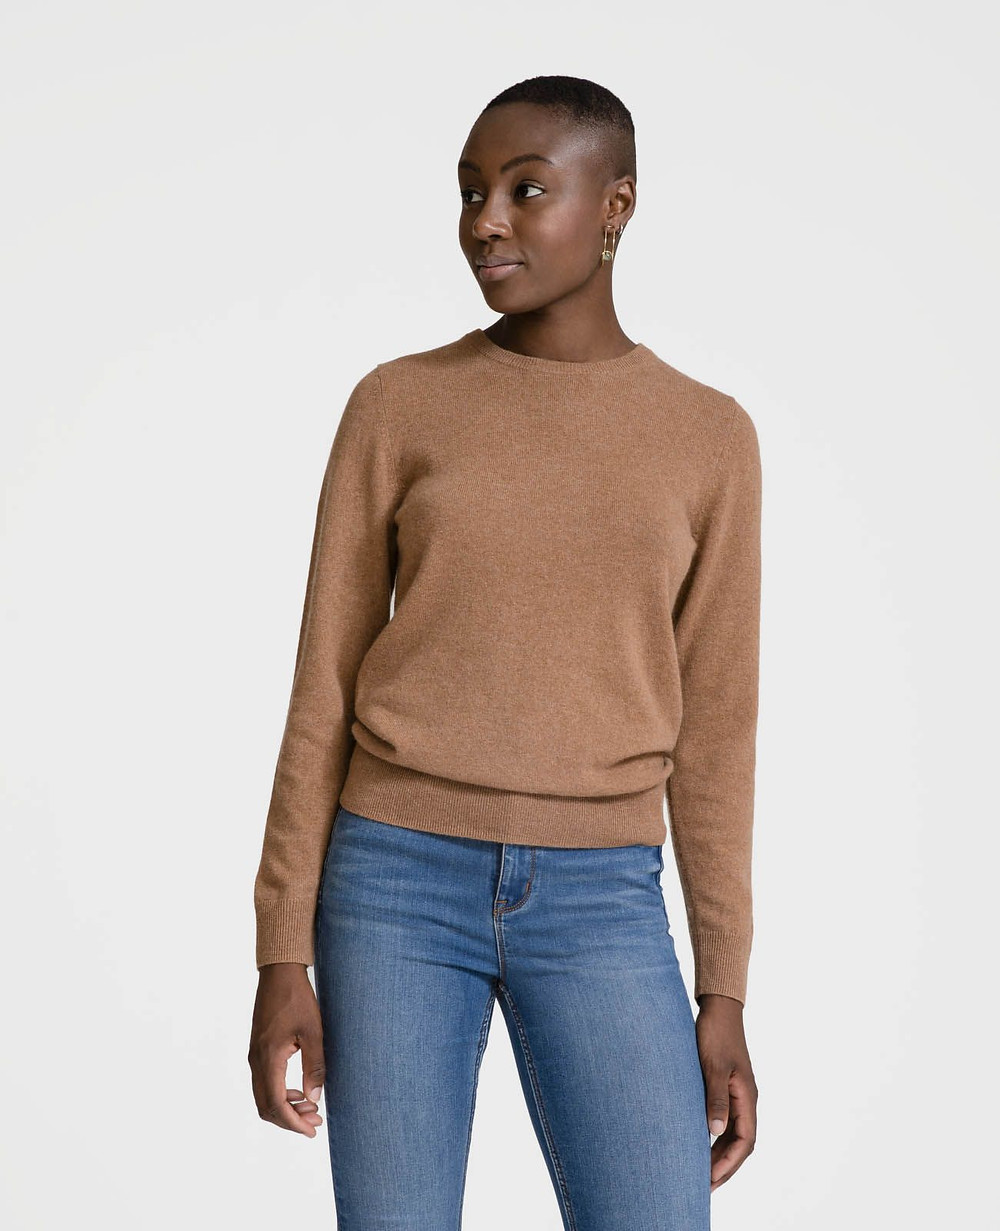 GRANA Mongolian Cashmere Sweater | 20 Cozy Knits for Fall 2018 | Fashion | A Style Alike